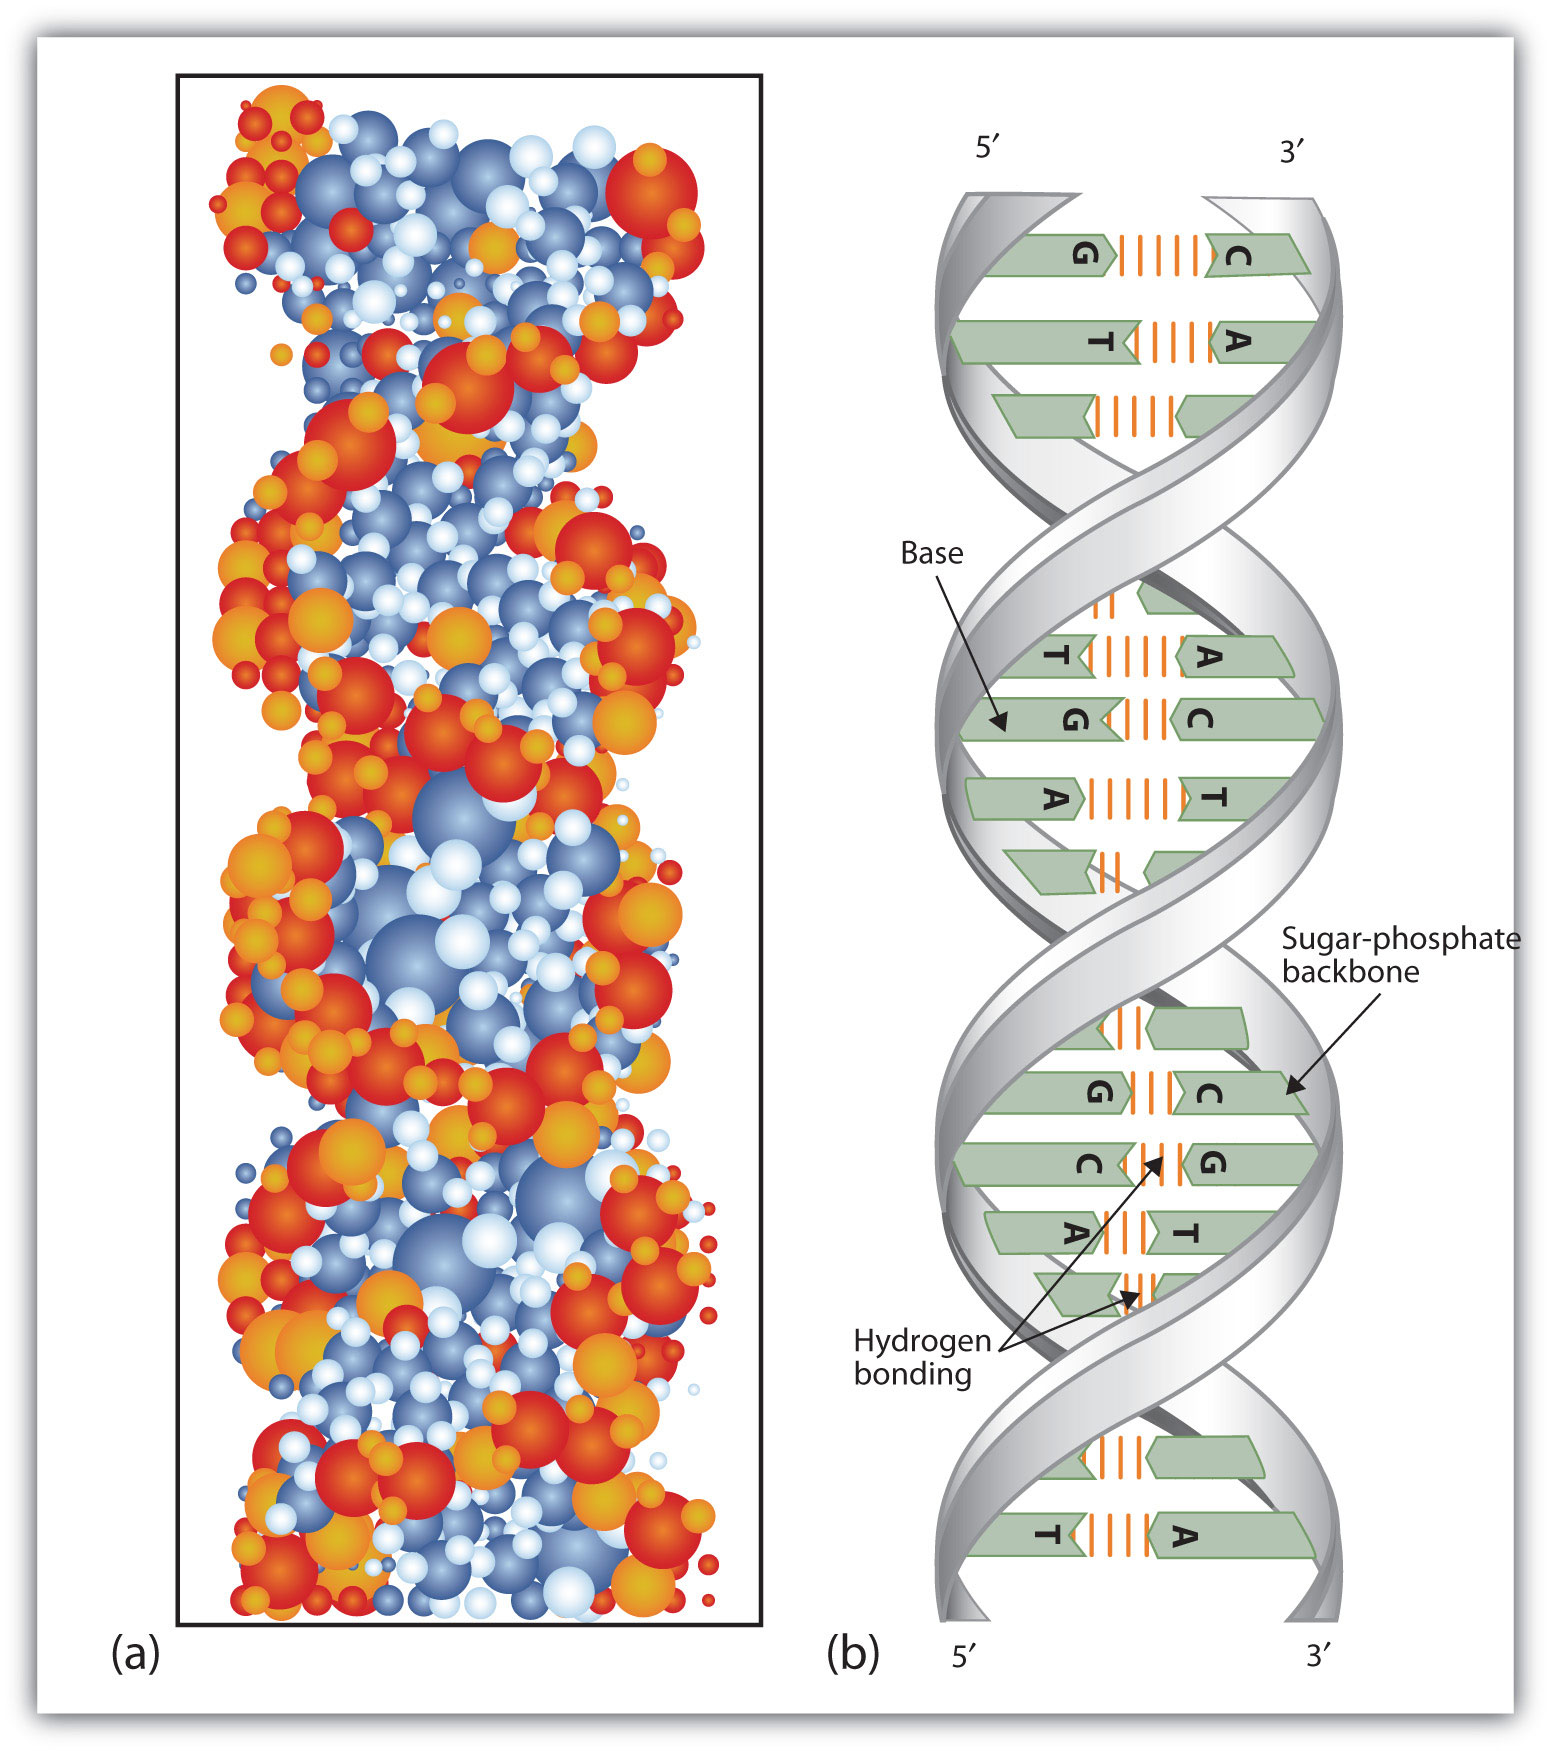 dna double helix Bekijk stockillustraties van dna microarray and double helix ga voor hoogwaardige foto's met een hoge resolutie naar getty images.